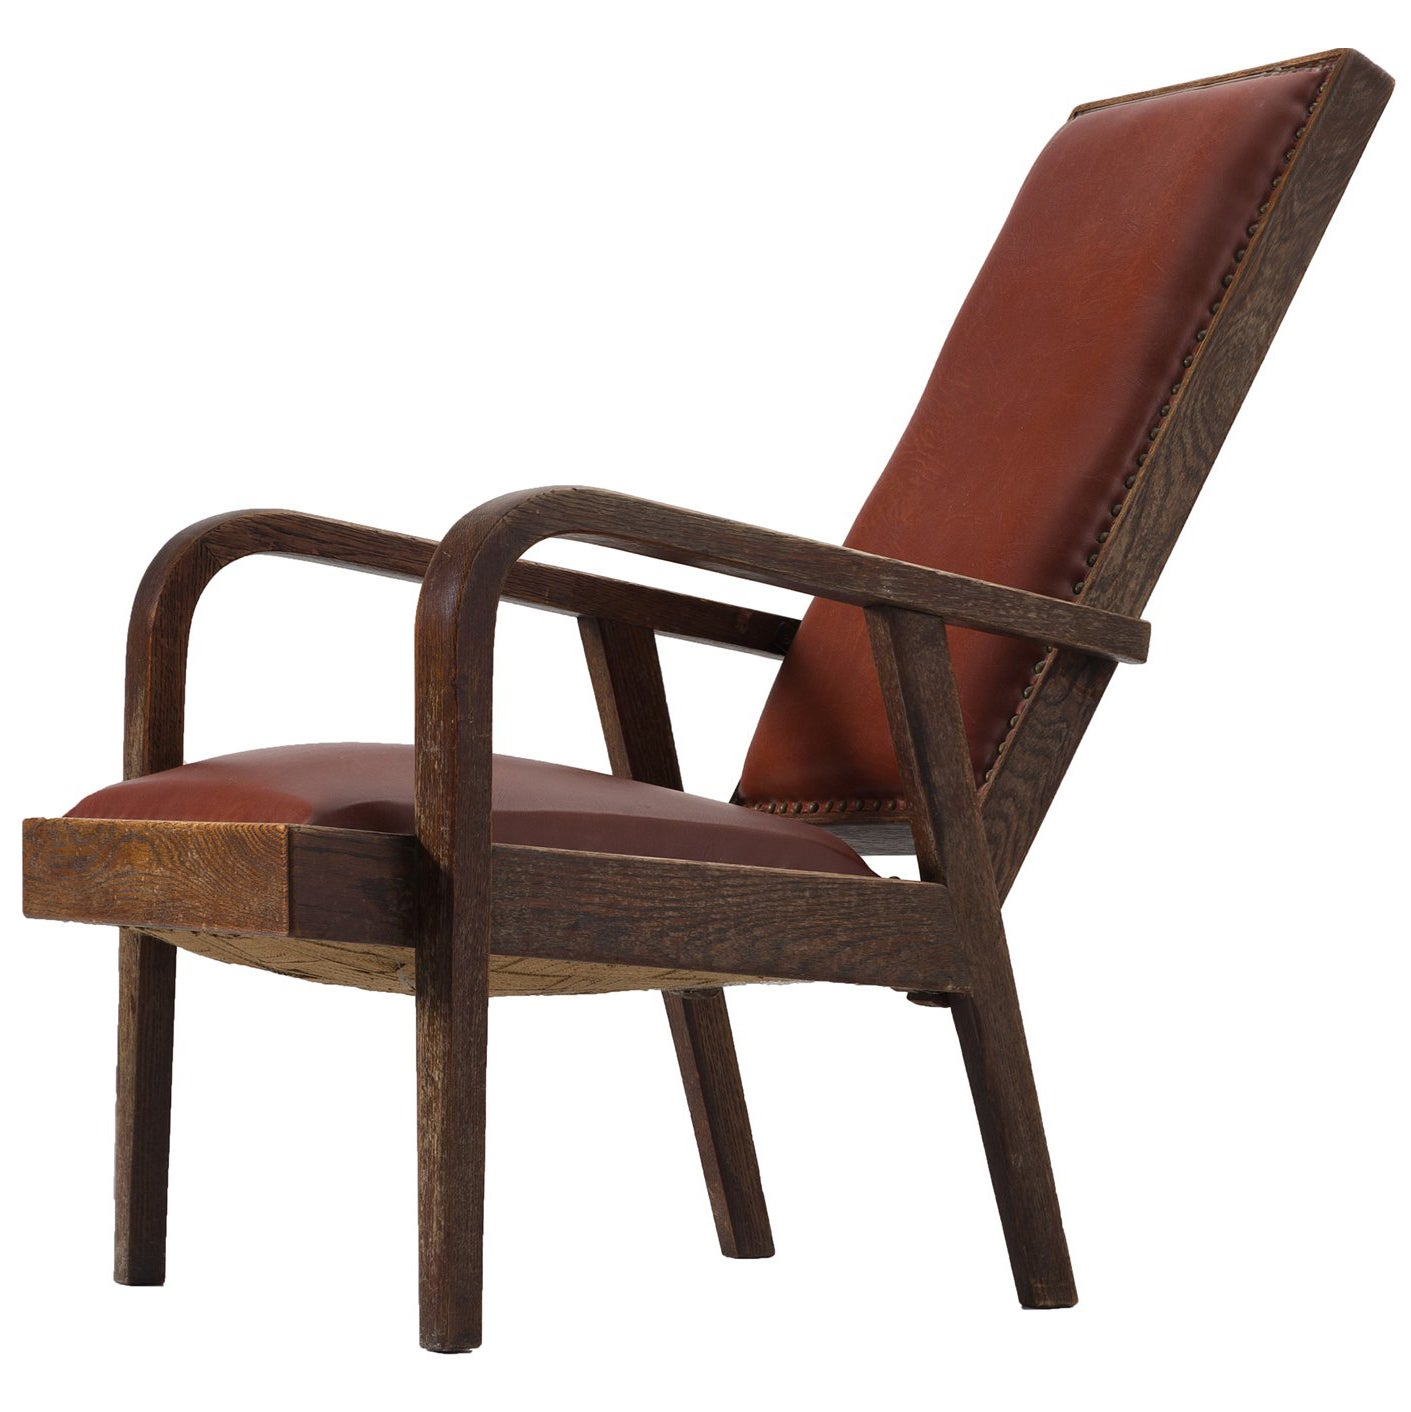 Adjustable Armchair in Red Leather and Oak